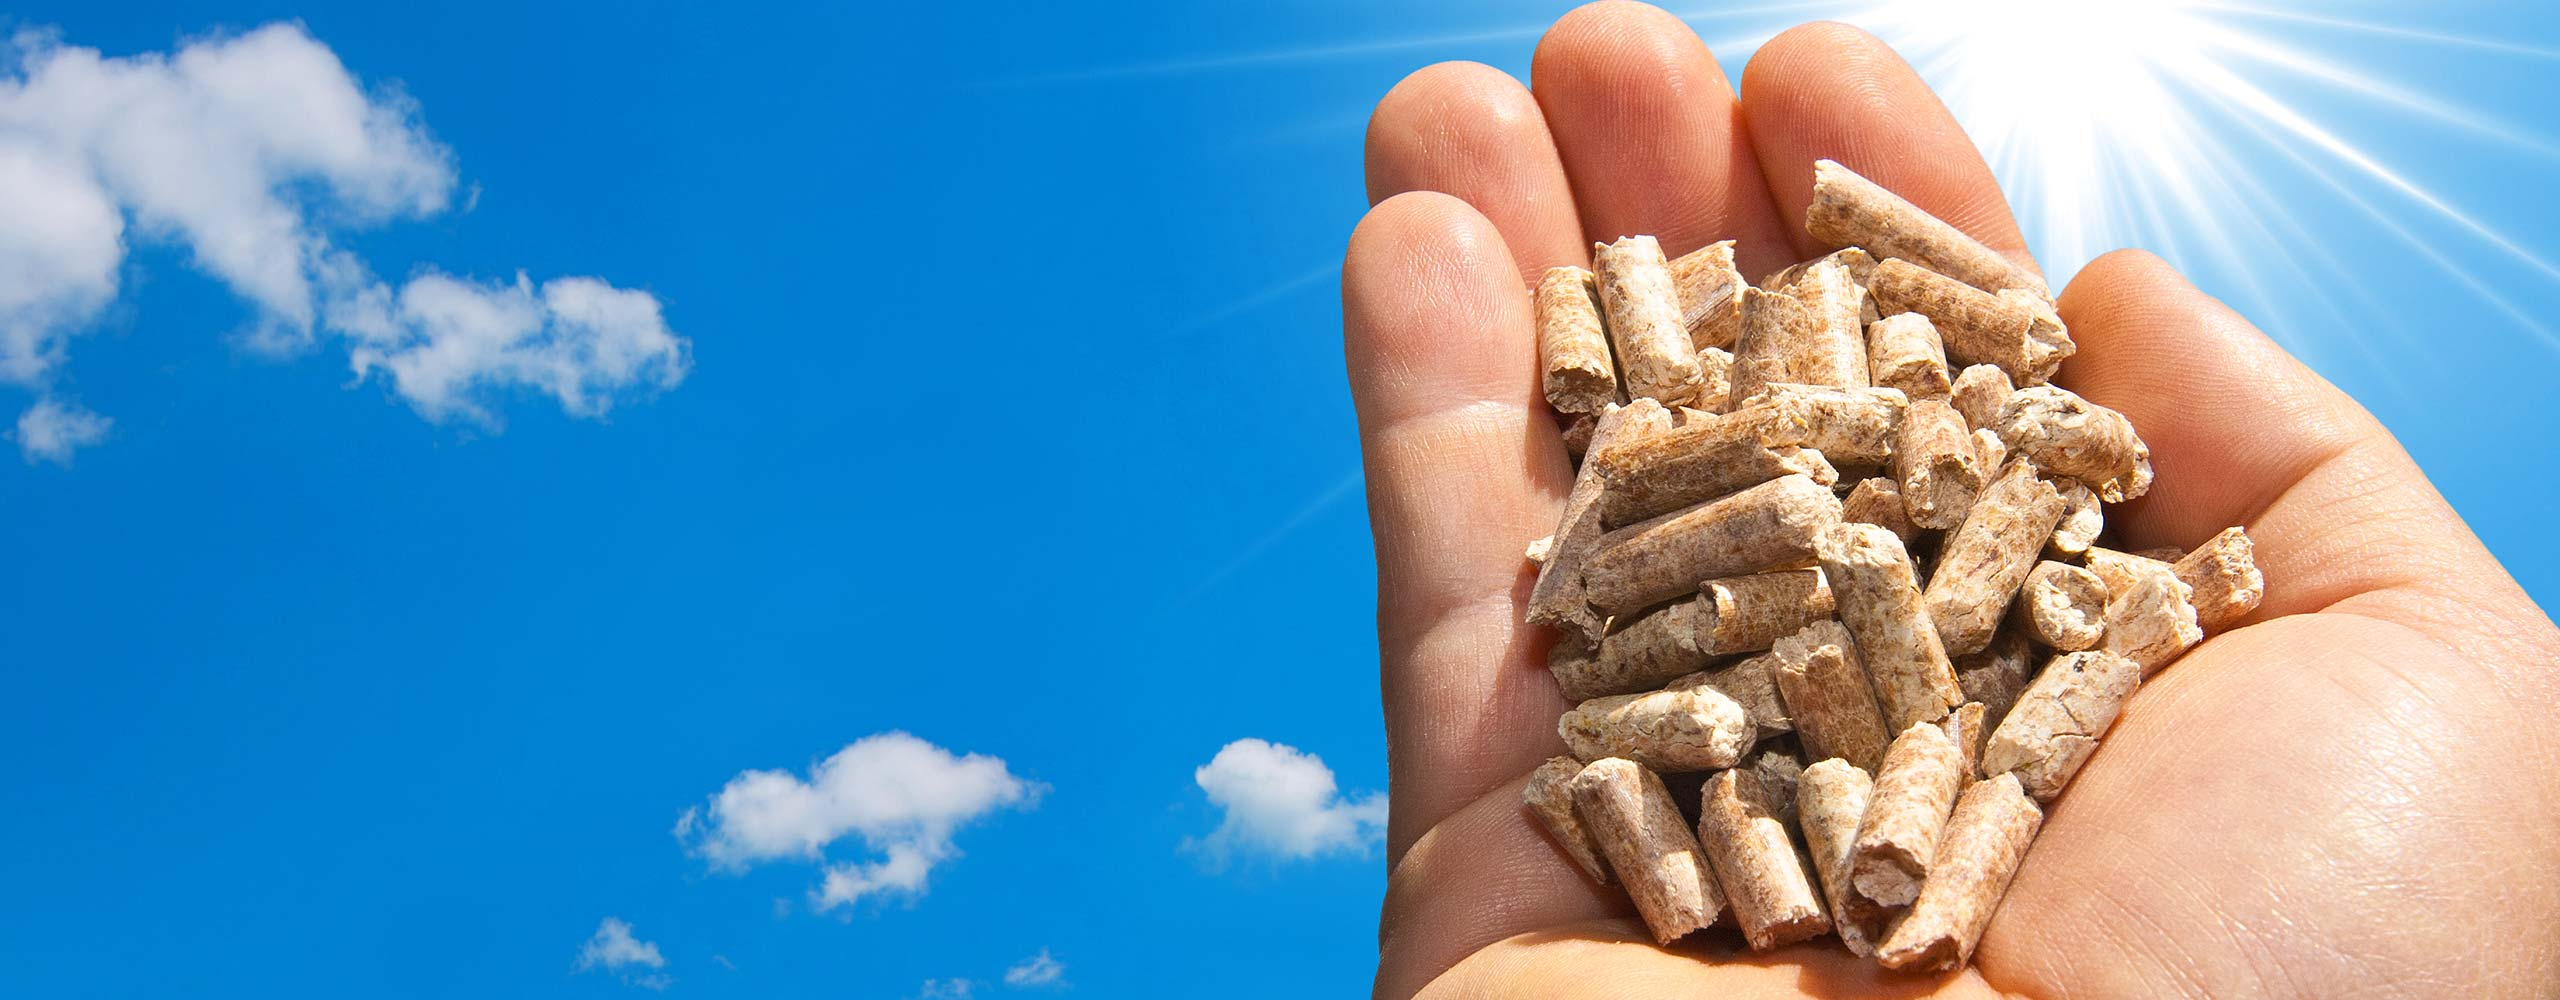 deliver wood pellets